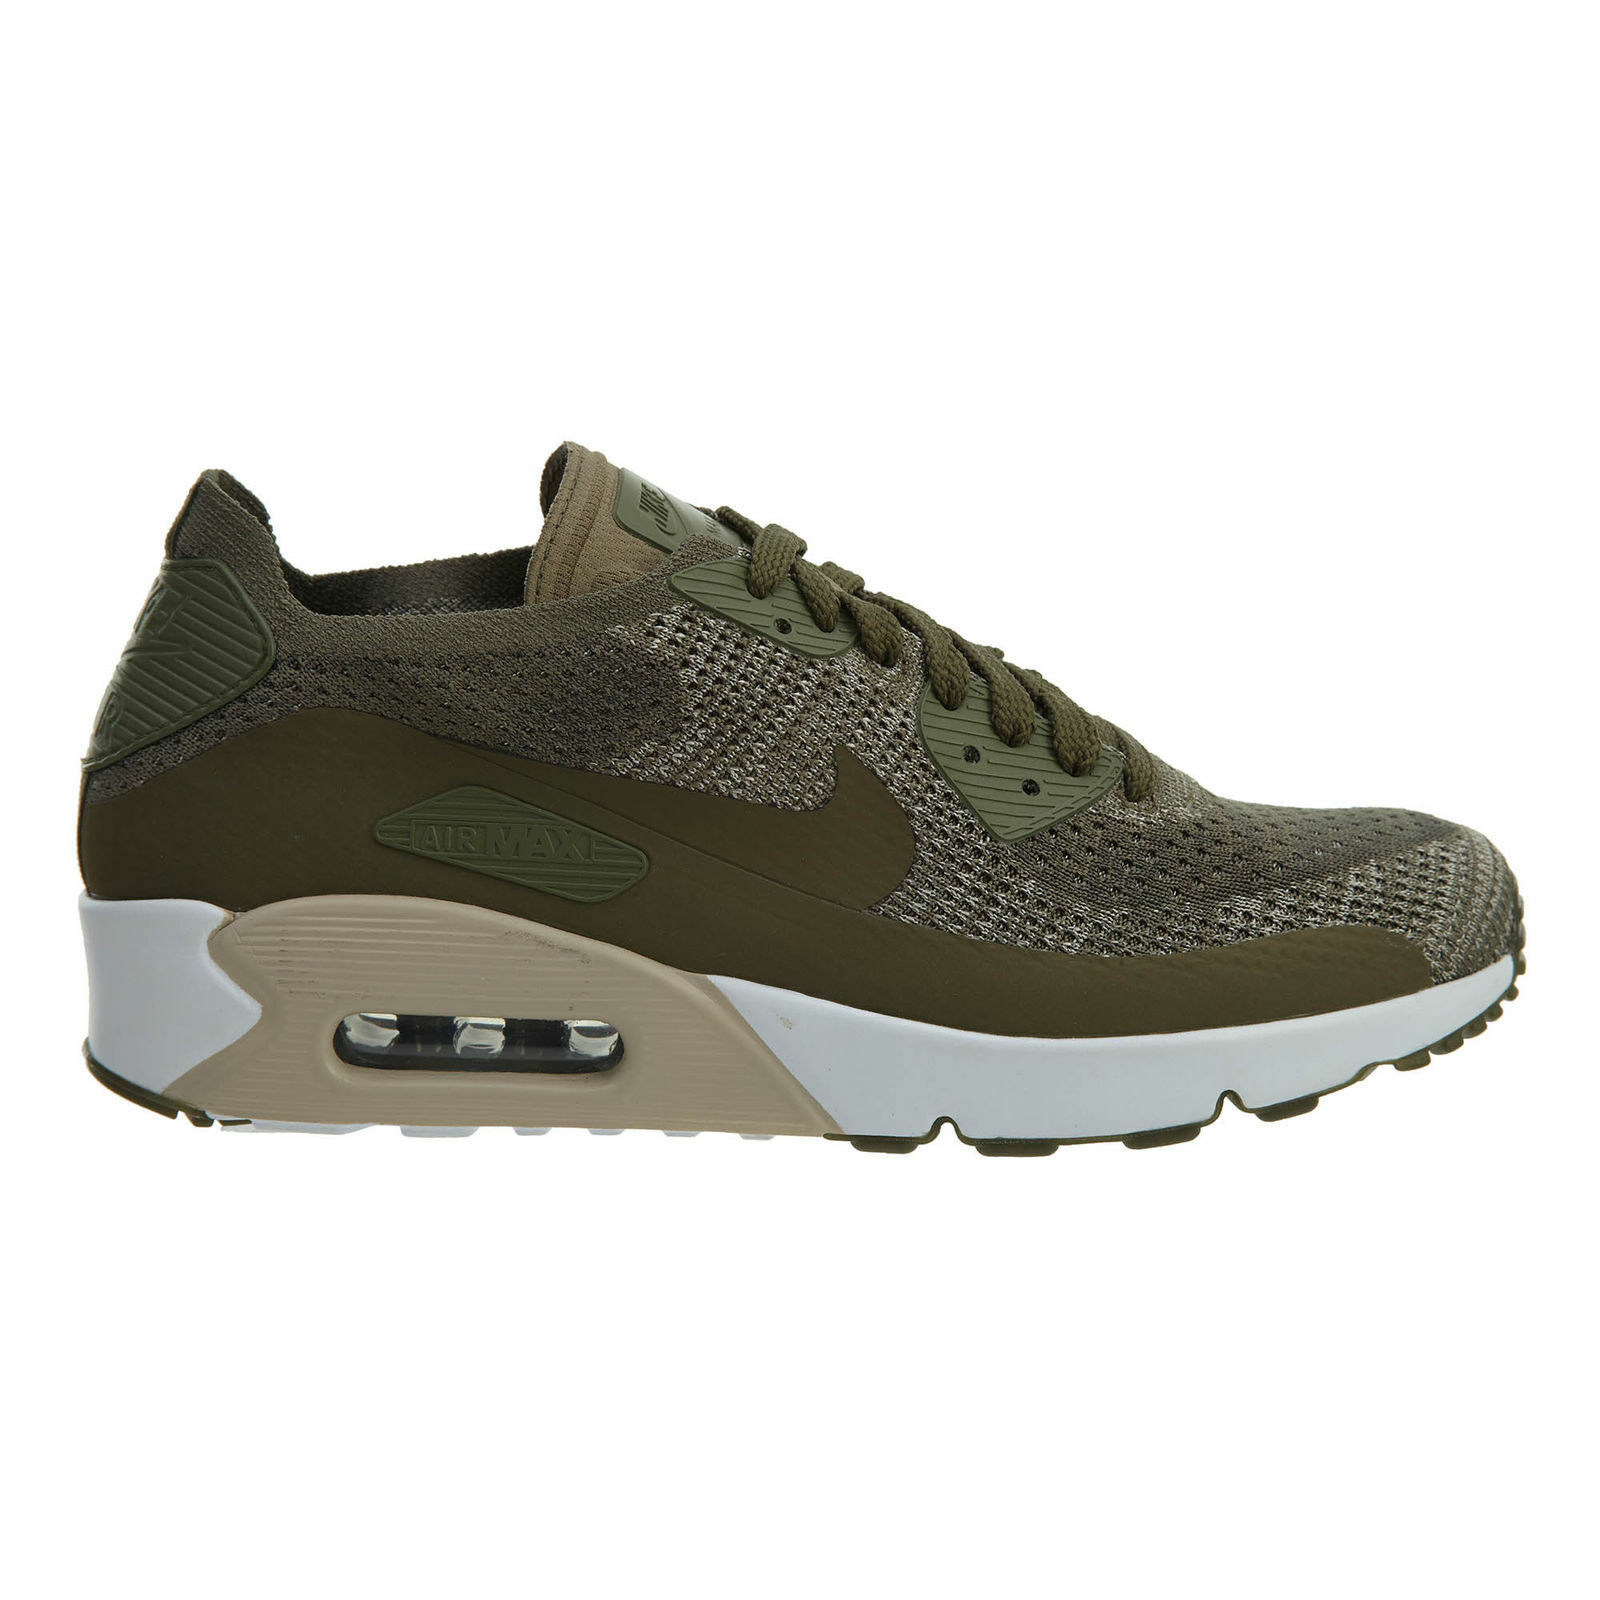 Nike Air Max 90 Ultra 2.0 Flyknit Mens 875943-200 Olive Running Shoes Size 11.5